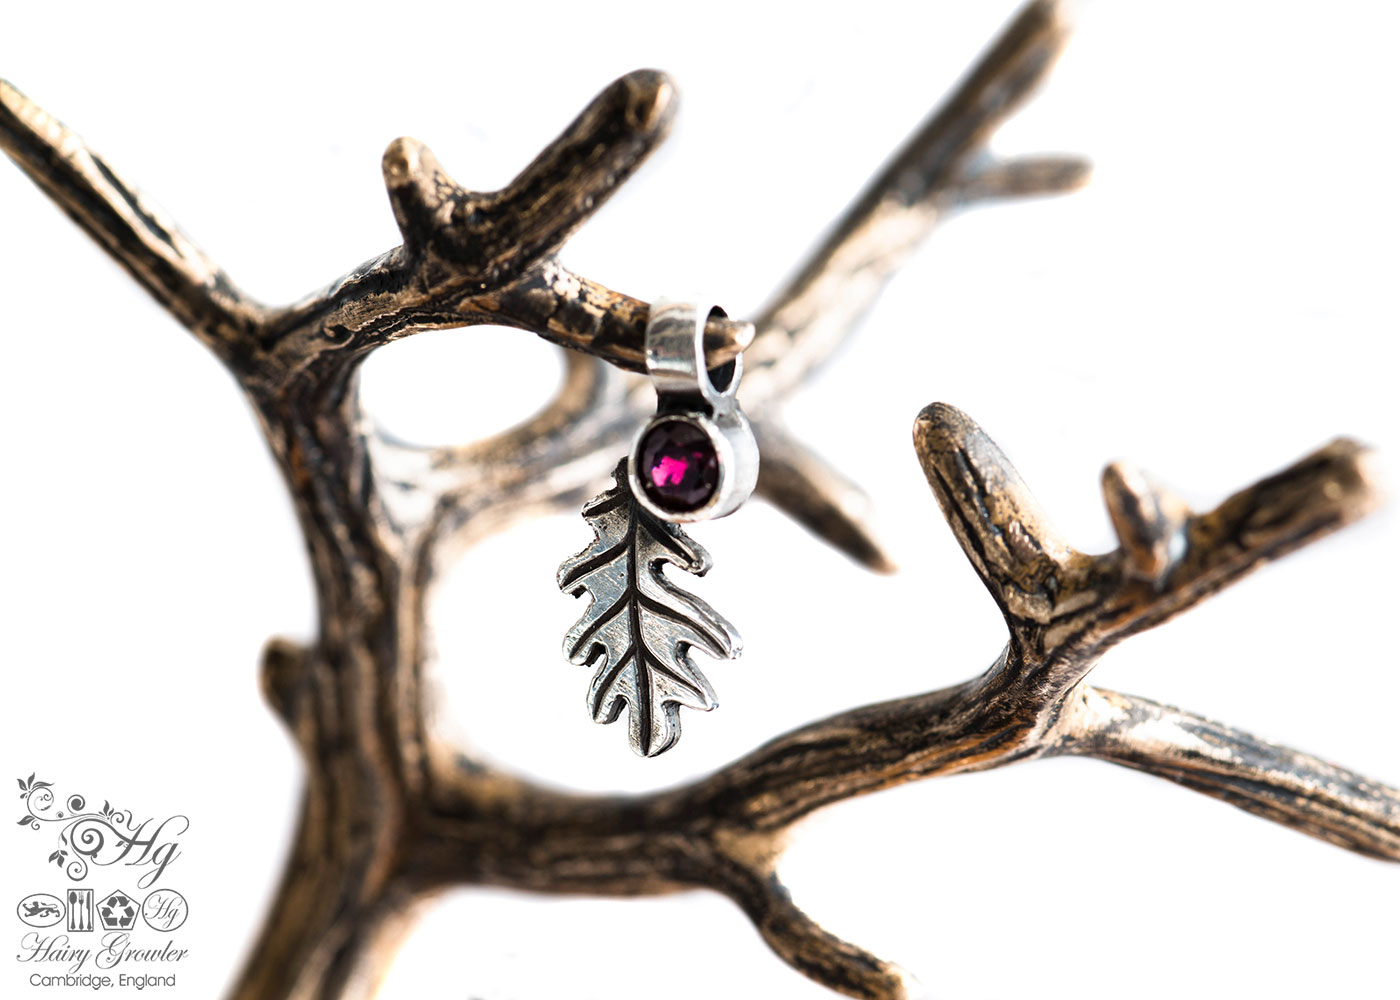 handcrafted silver and garnet oak leaf charm for a tree sculpture, necklace or bracelet